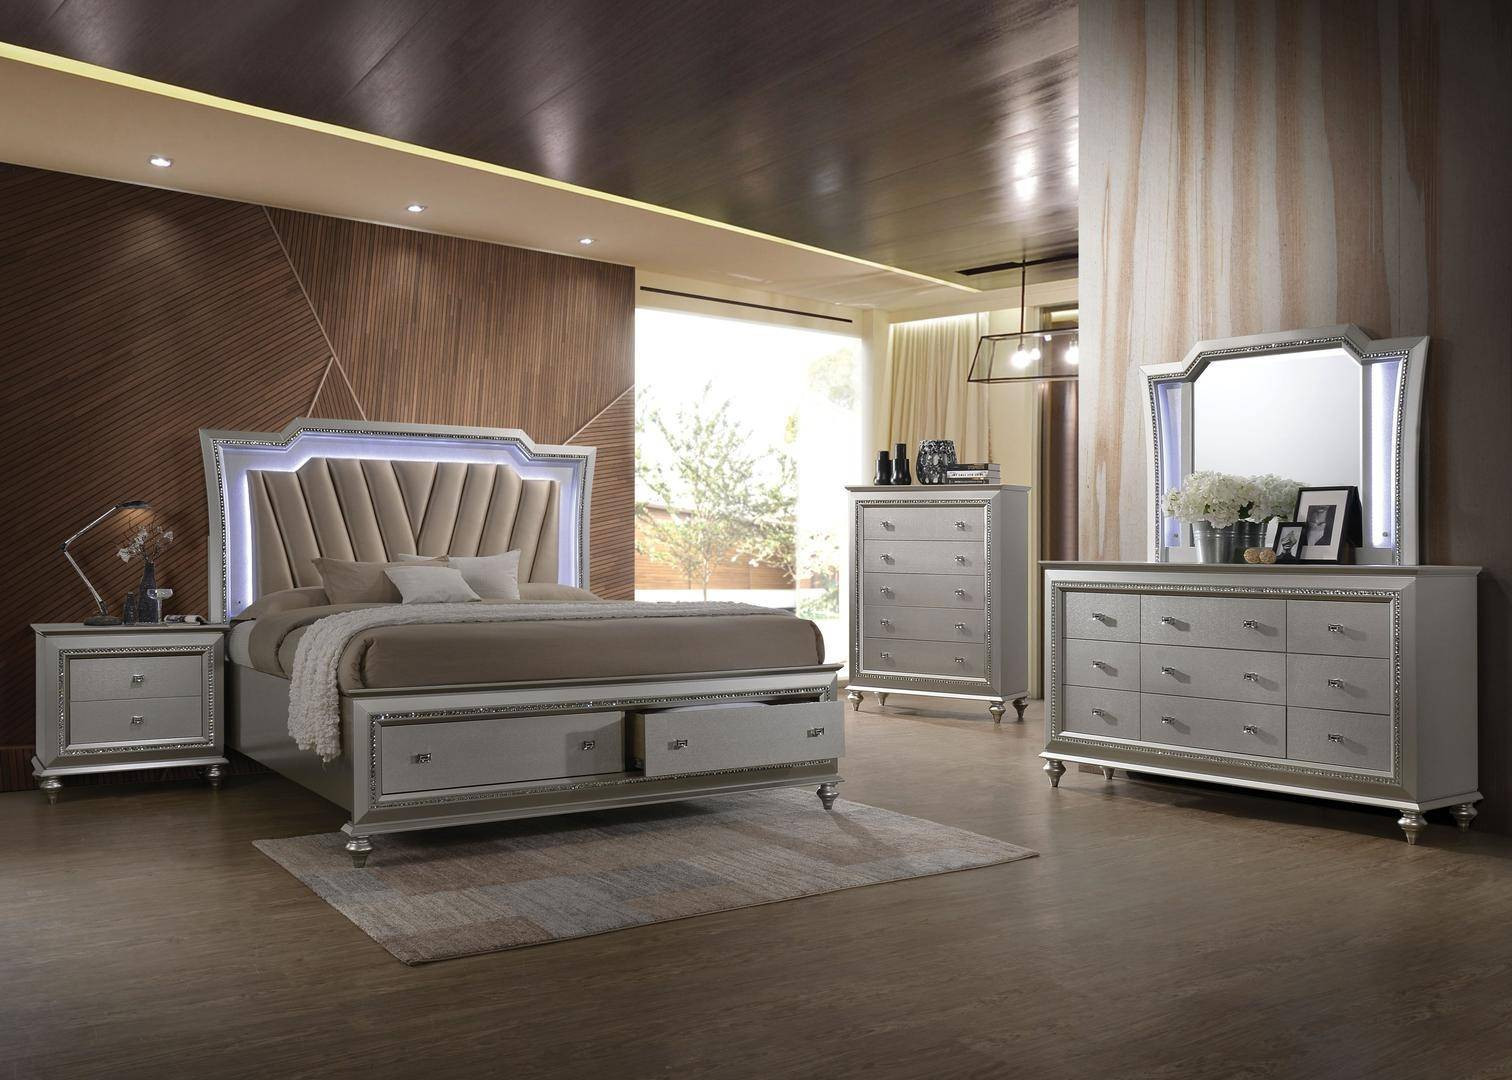 Storage Bedroom Sets  Glam Queen Storage Bedroom Set 5 w Chest w LED Champagne